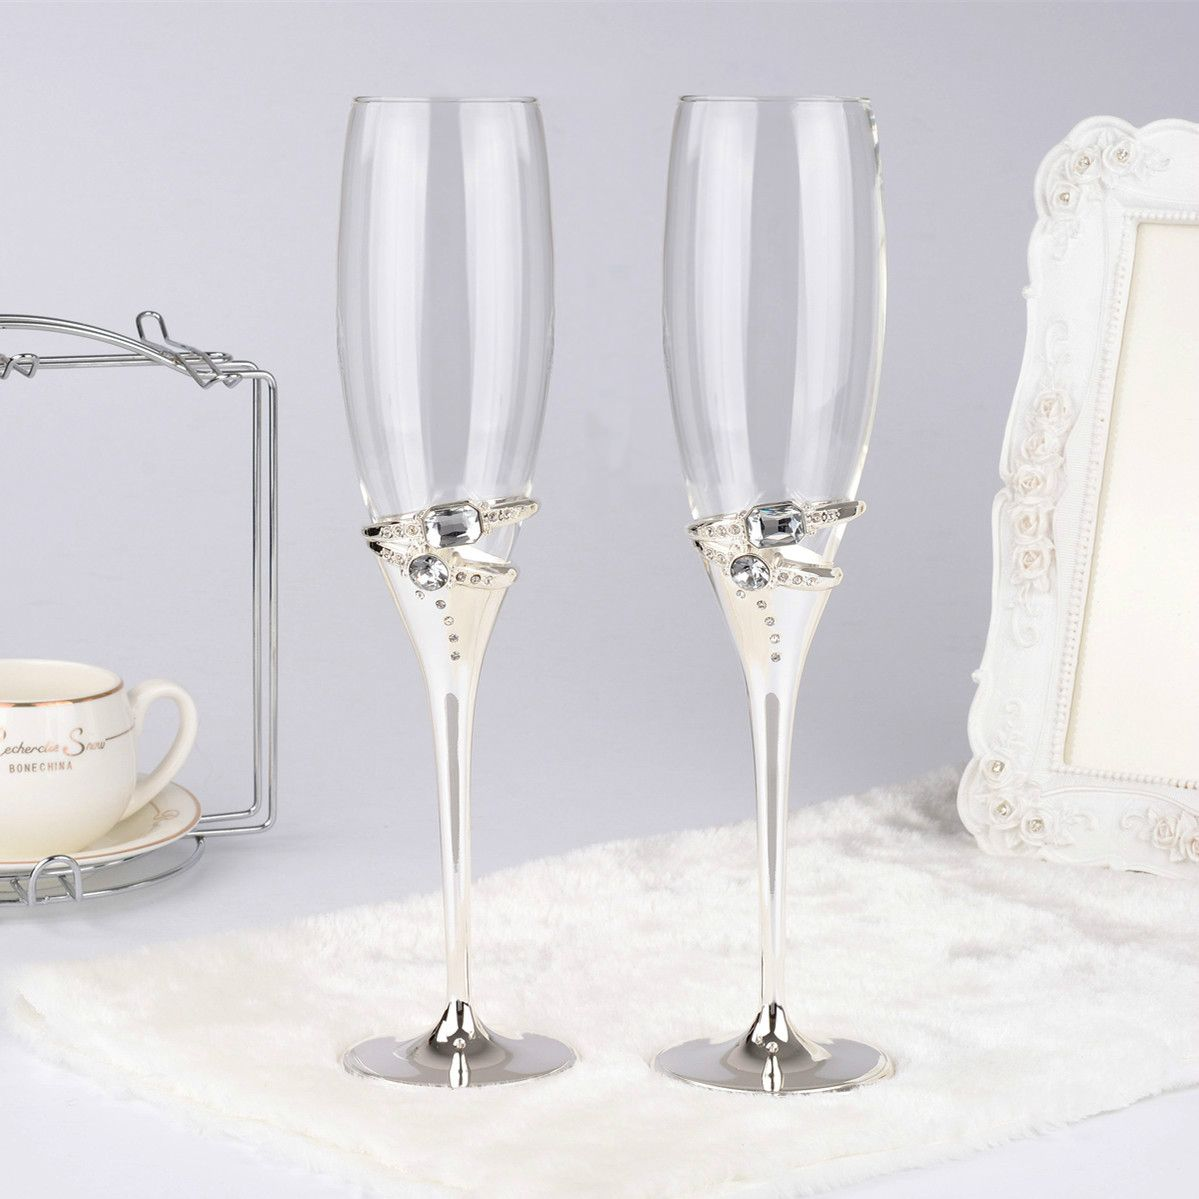 1 pair silver color wedding champagne red wine glasses with crystal 2 rings/ champagne glass decorations flute goblet